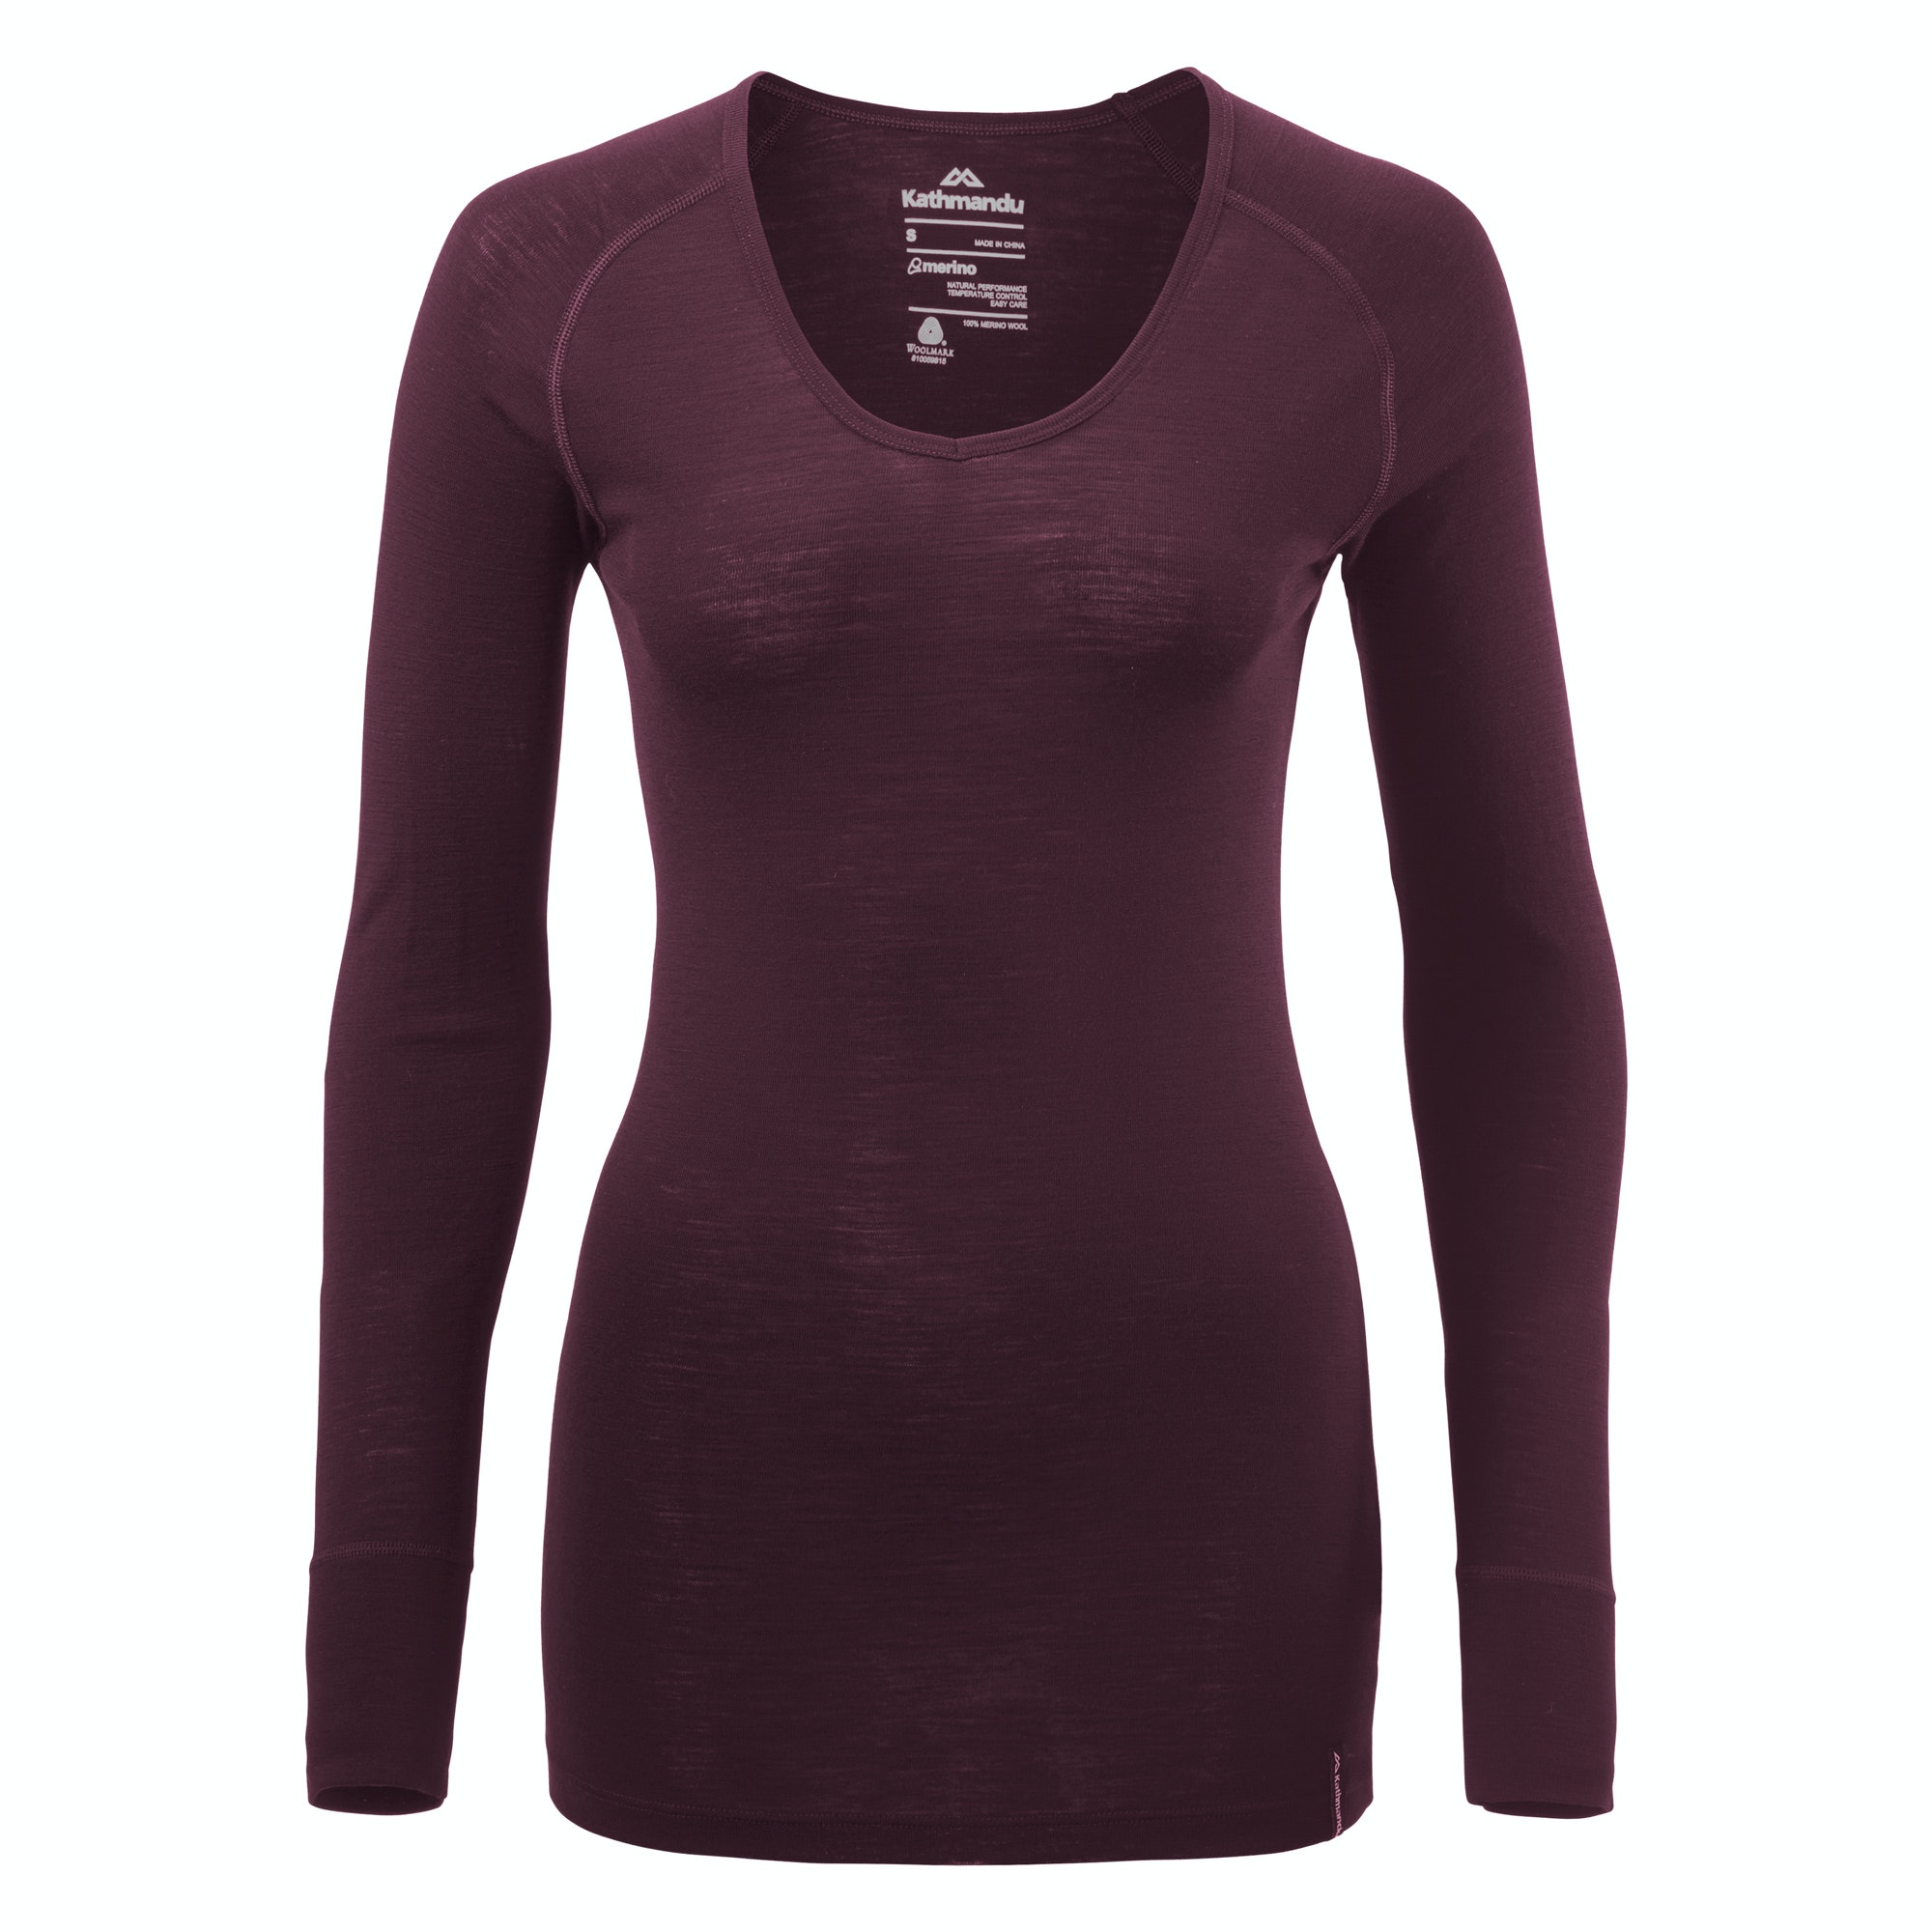 thermal women Browse our thermal suits collection, women's, men's and kids' since 1994, our swim shop offers low prices 20+ years of savings, shop and save today.